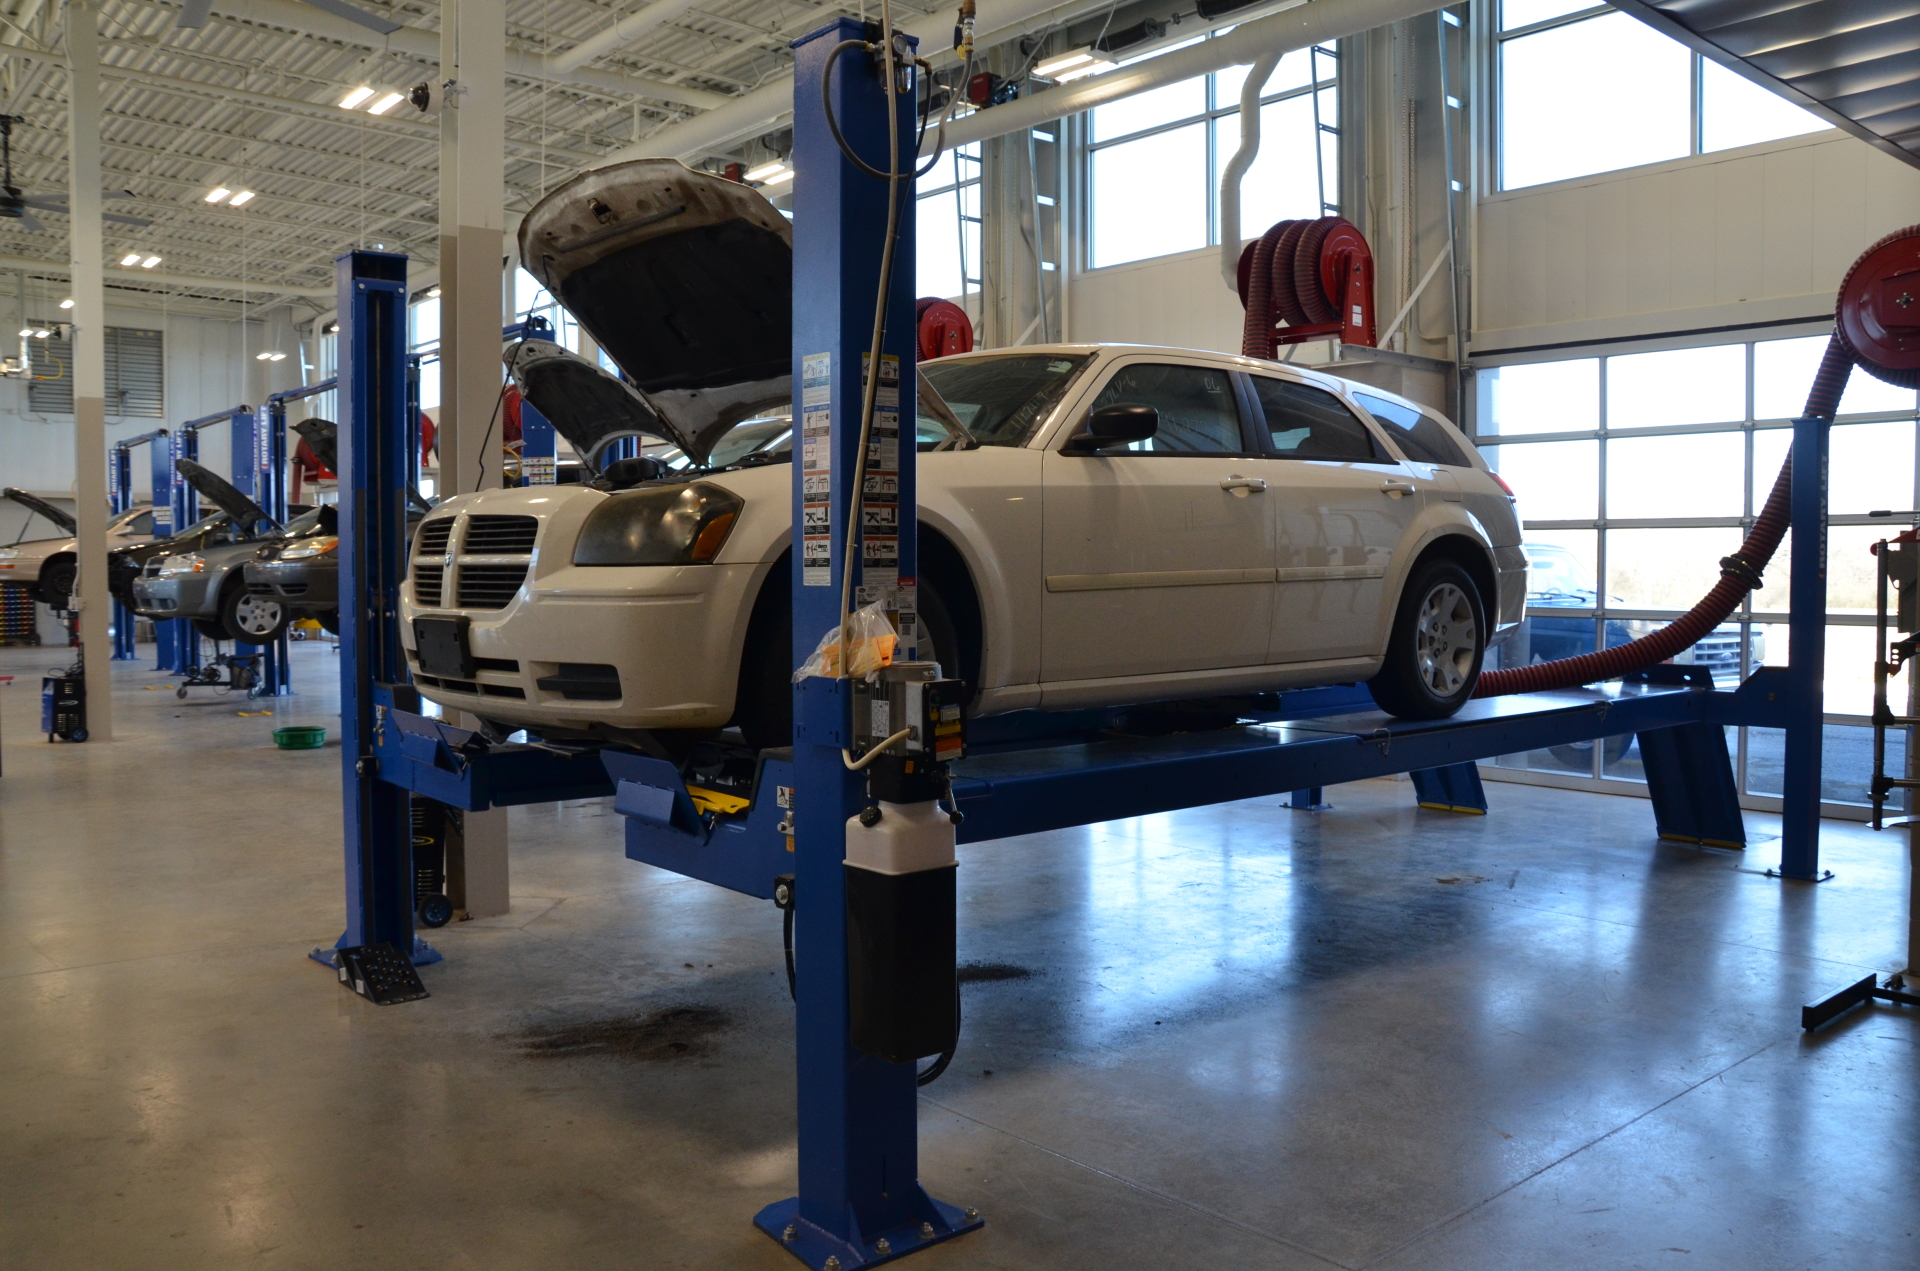 UACCM receives new automotive technology equipment